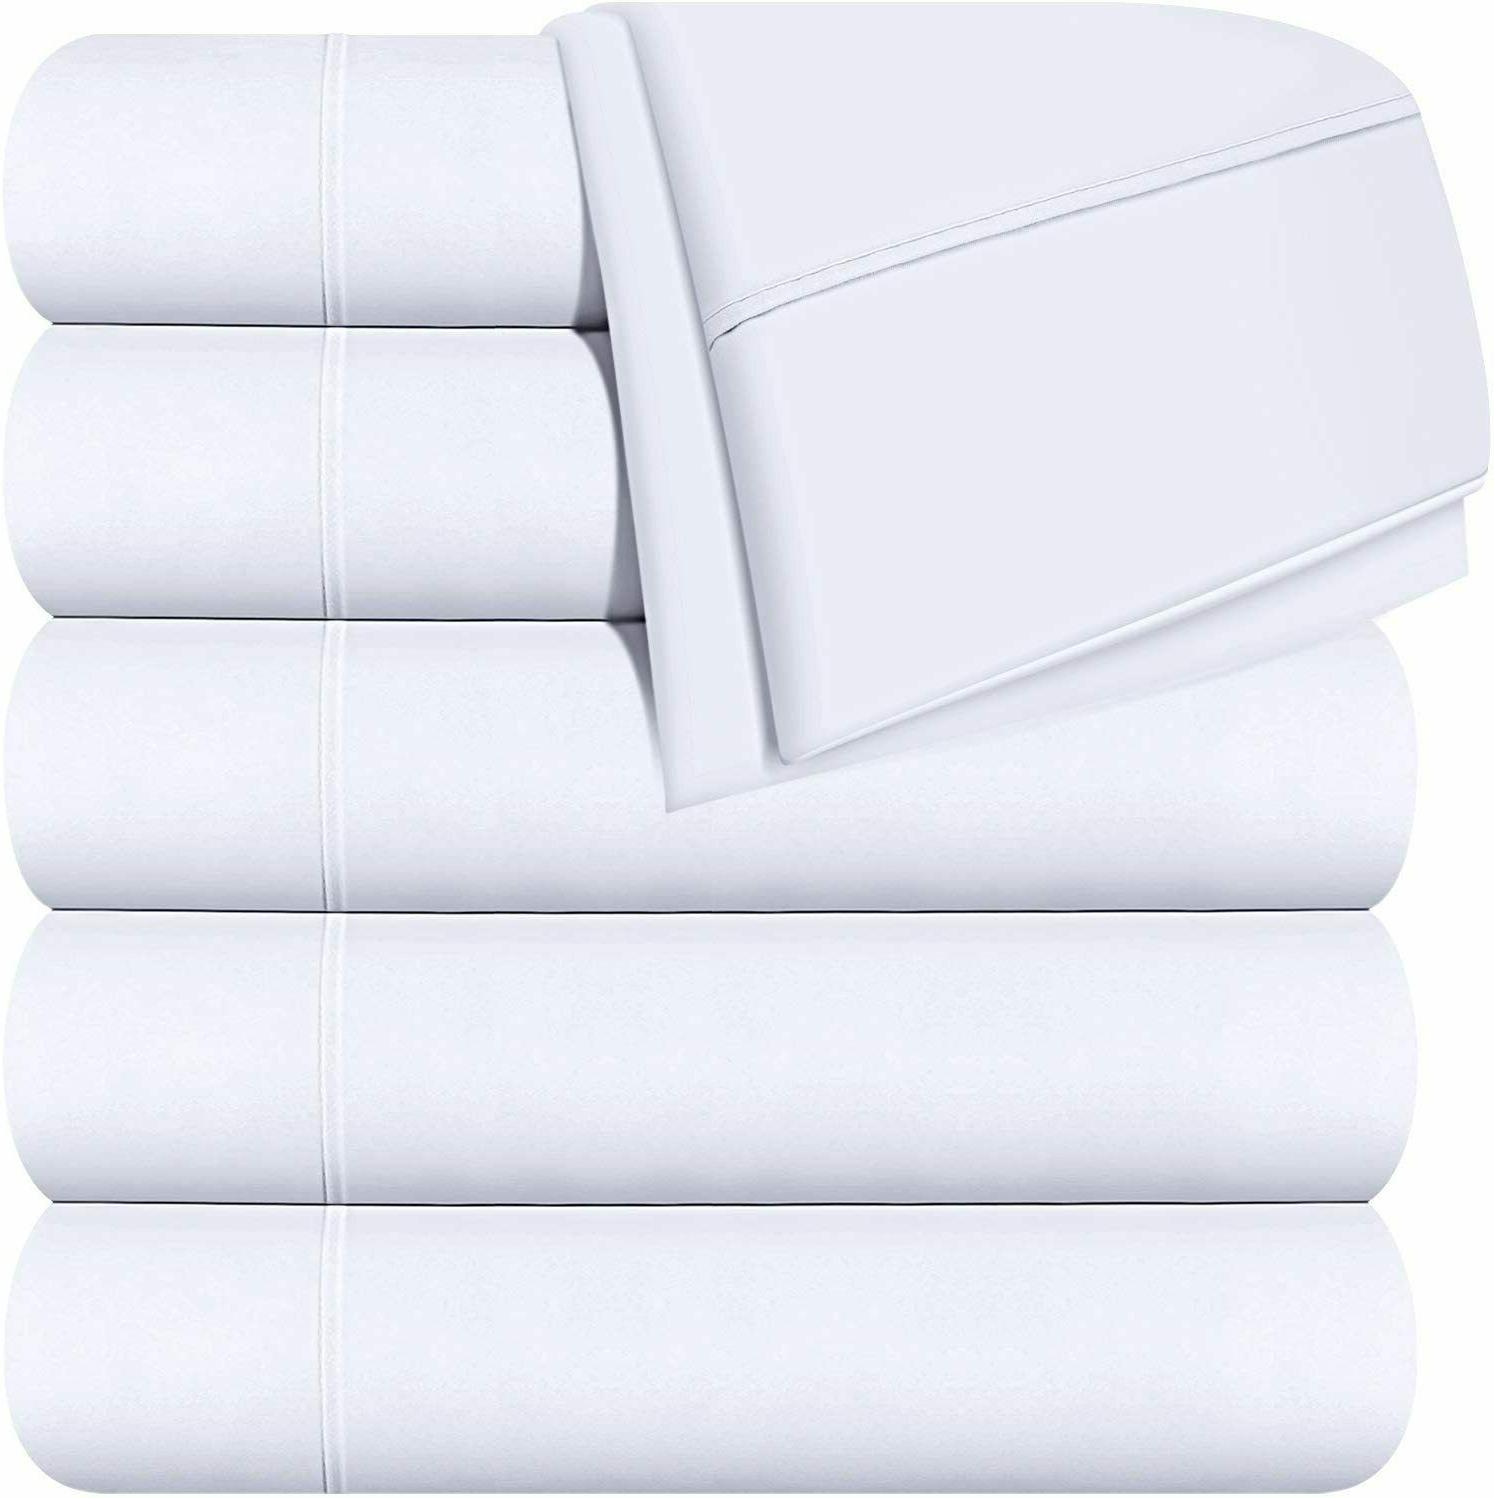 flat sheets brushed microfiber breathable hotel quality